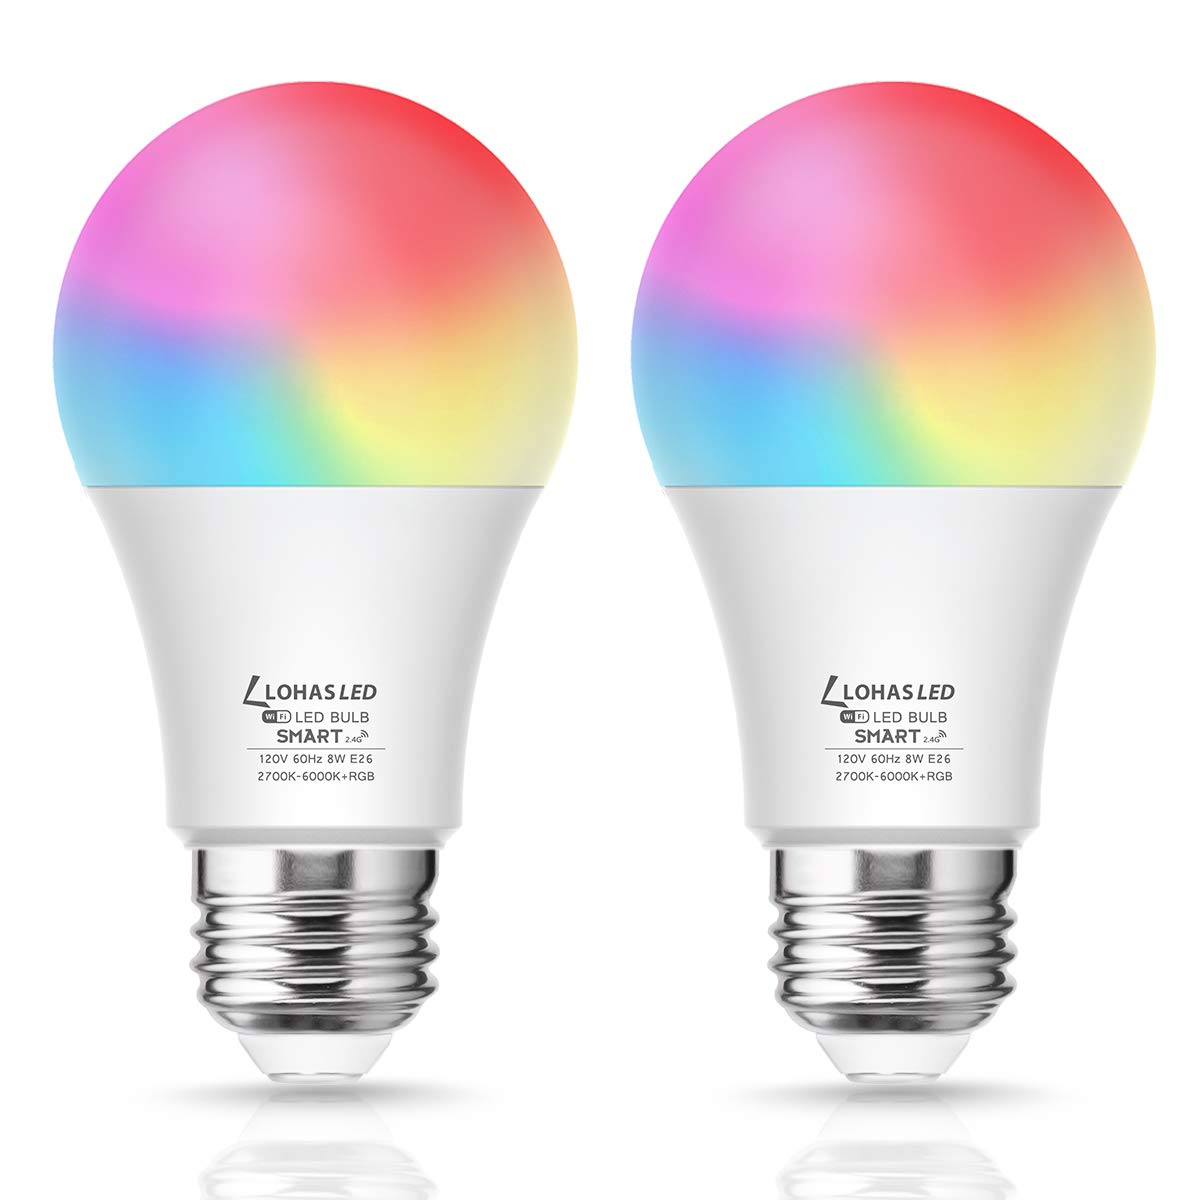 LED Smart Light Bulb 60W Equivalent, A19 LED Dimmable Daylight Warm 2000K-9000K Tunable White Works with Alexa, Google Assistant, Siri and IFTTT, NO Hub Required, RGB Color Changing E26 Bulb, 2 Pack